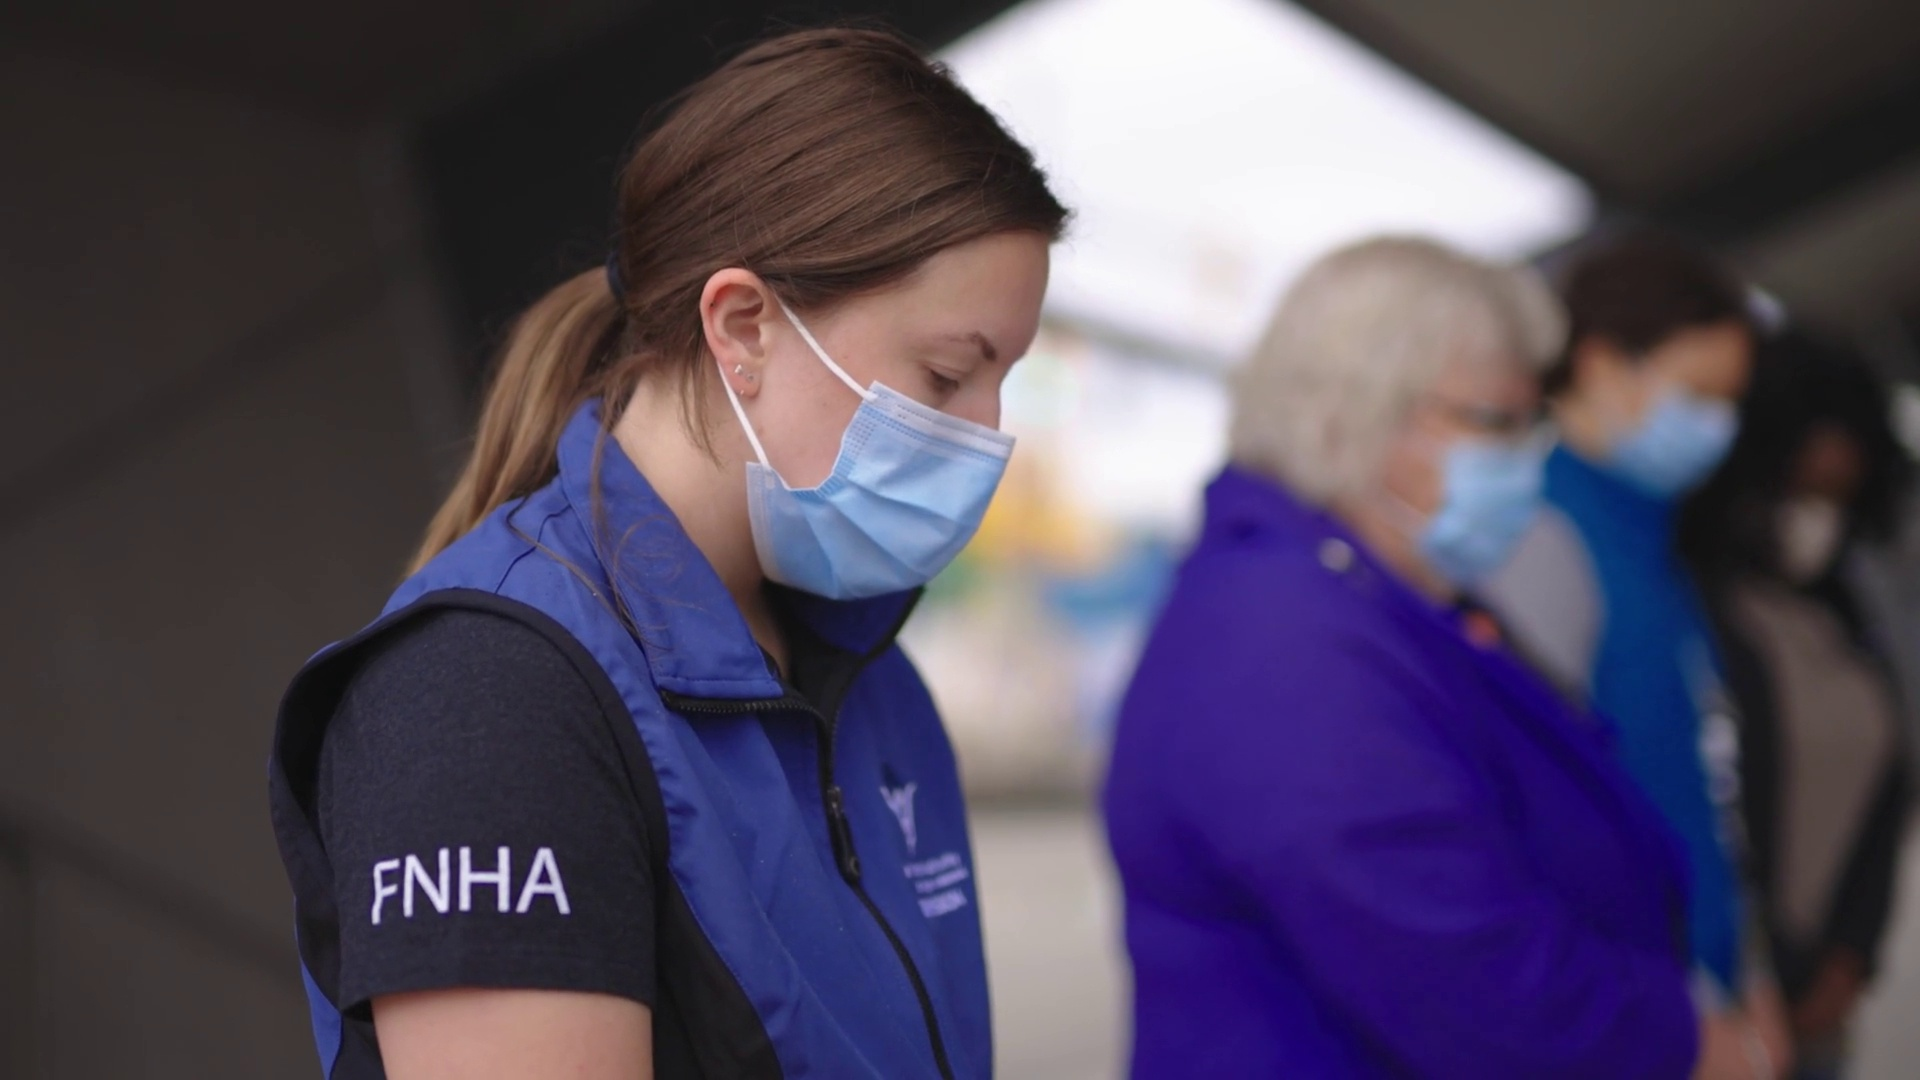 Covid in the North for First Nations Health Authority